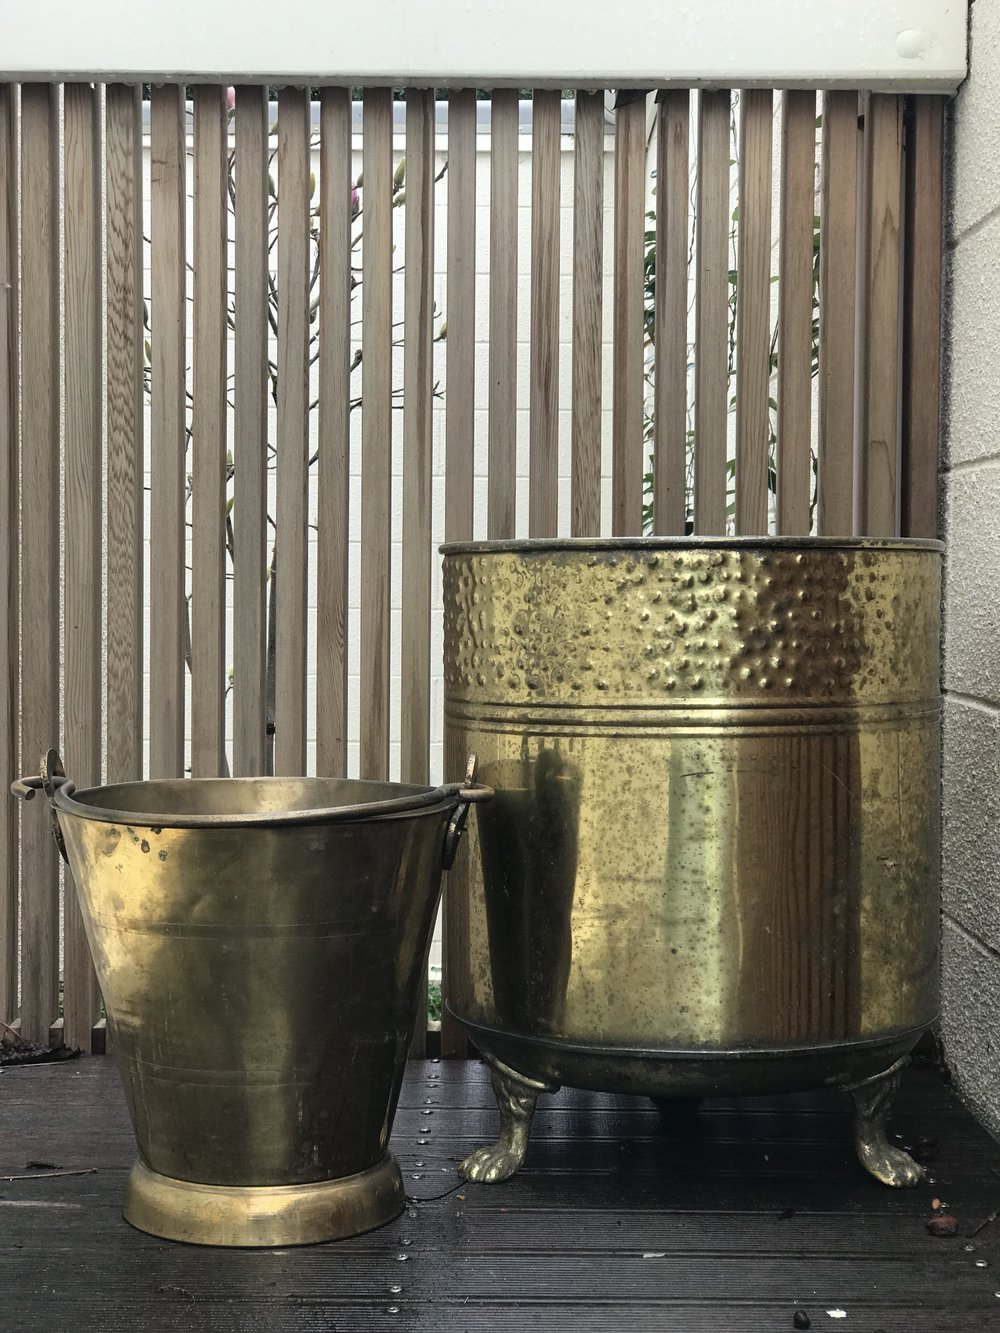 Large Brass Tubs I $10.00 I Qty 4